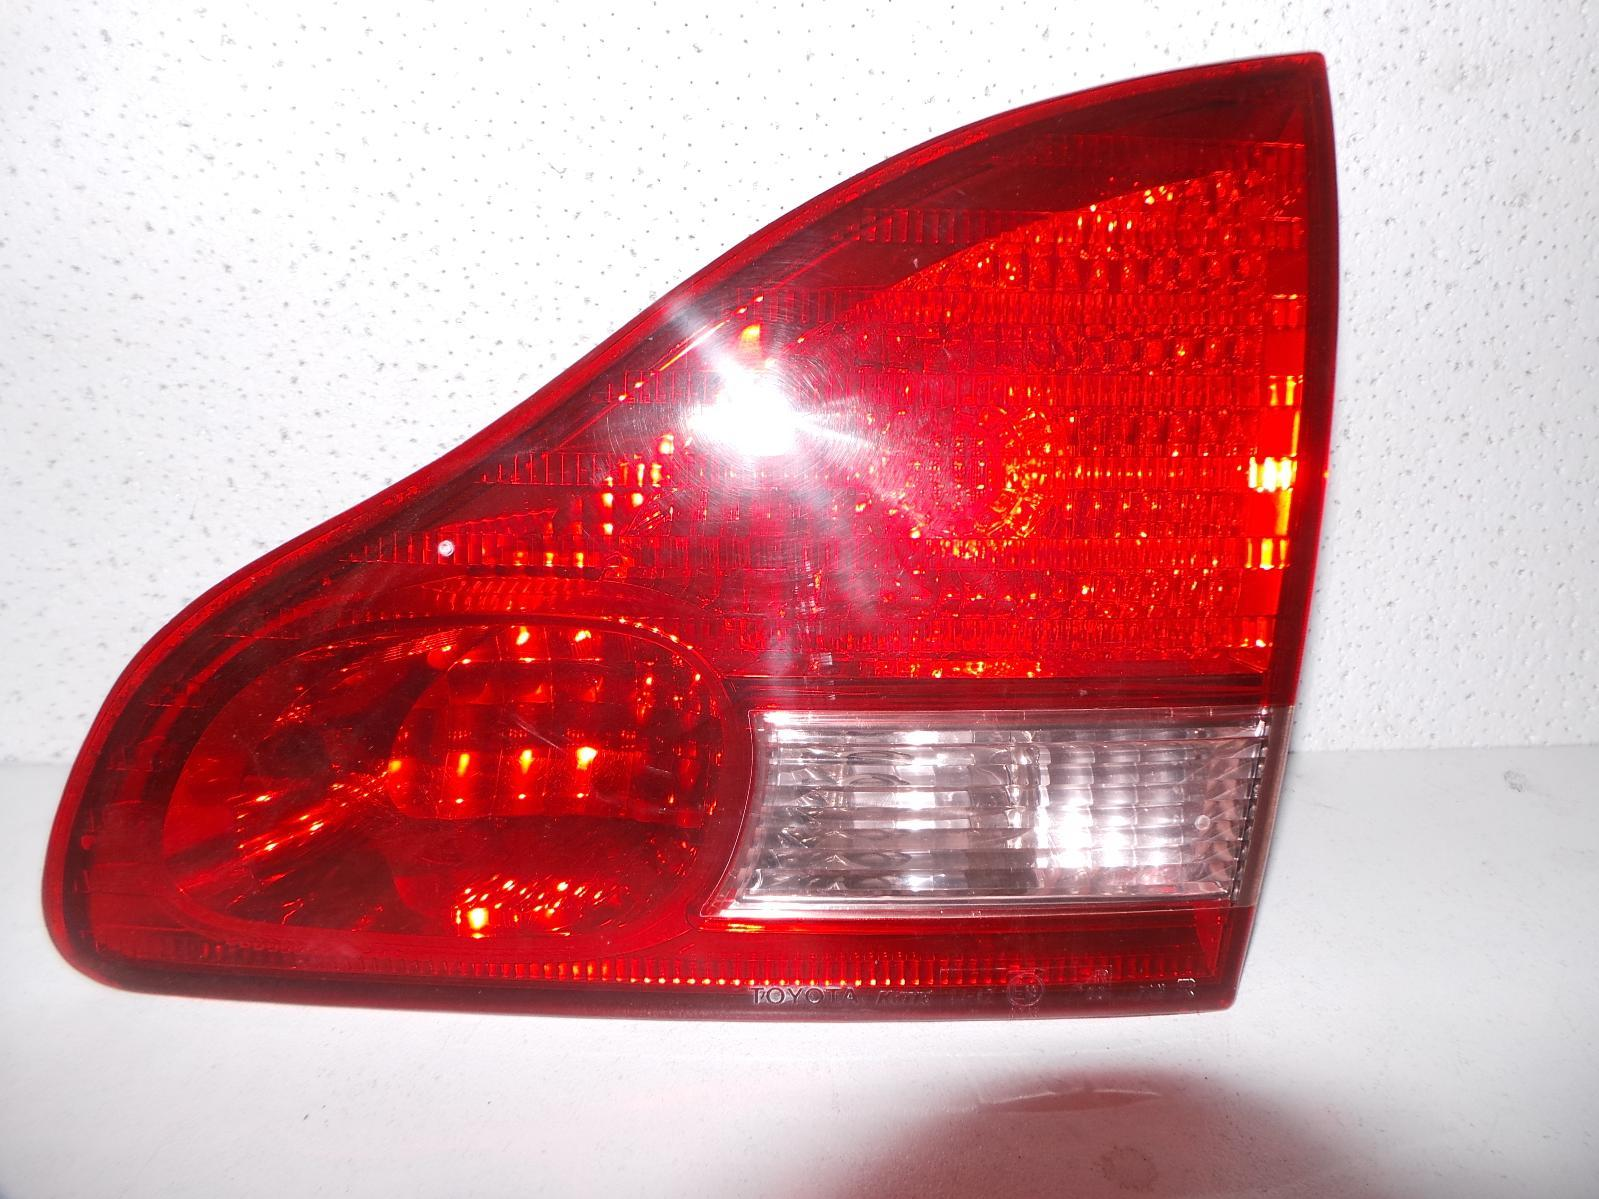 TOYOTA AVENSIS, Rear Garnish, TAILGATE LAMP (RH SIDE), ACM20R, 12/01-11/03